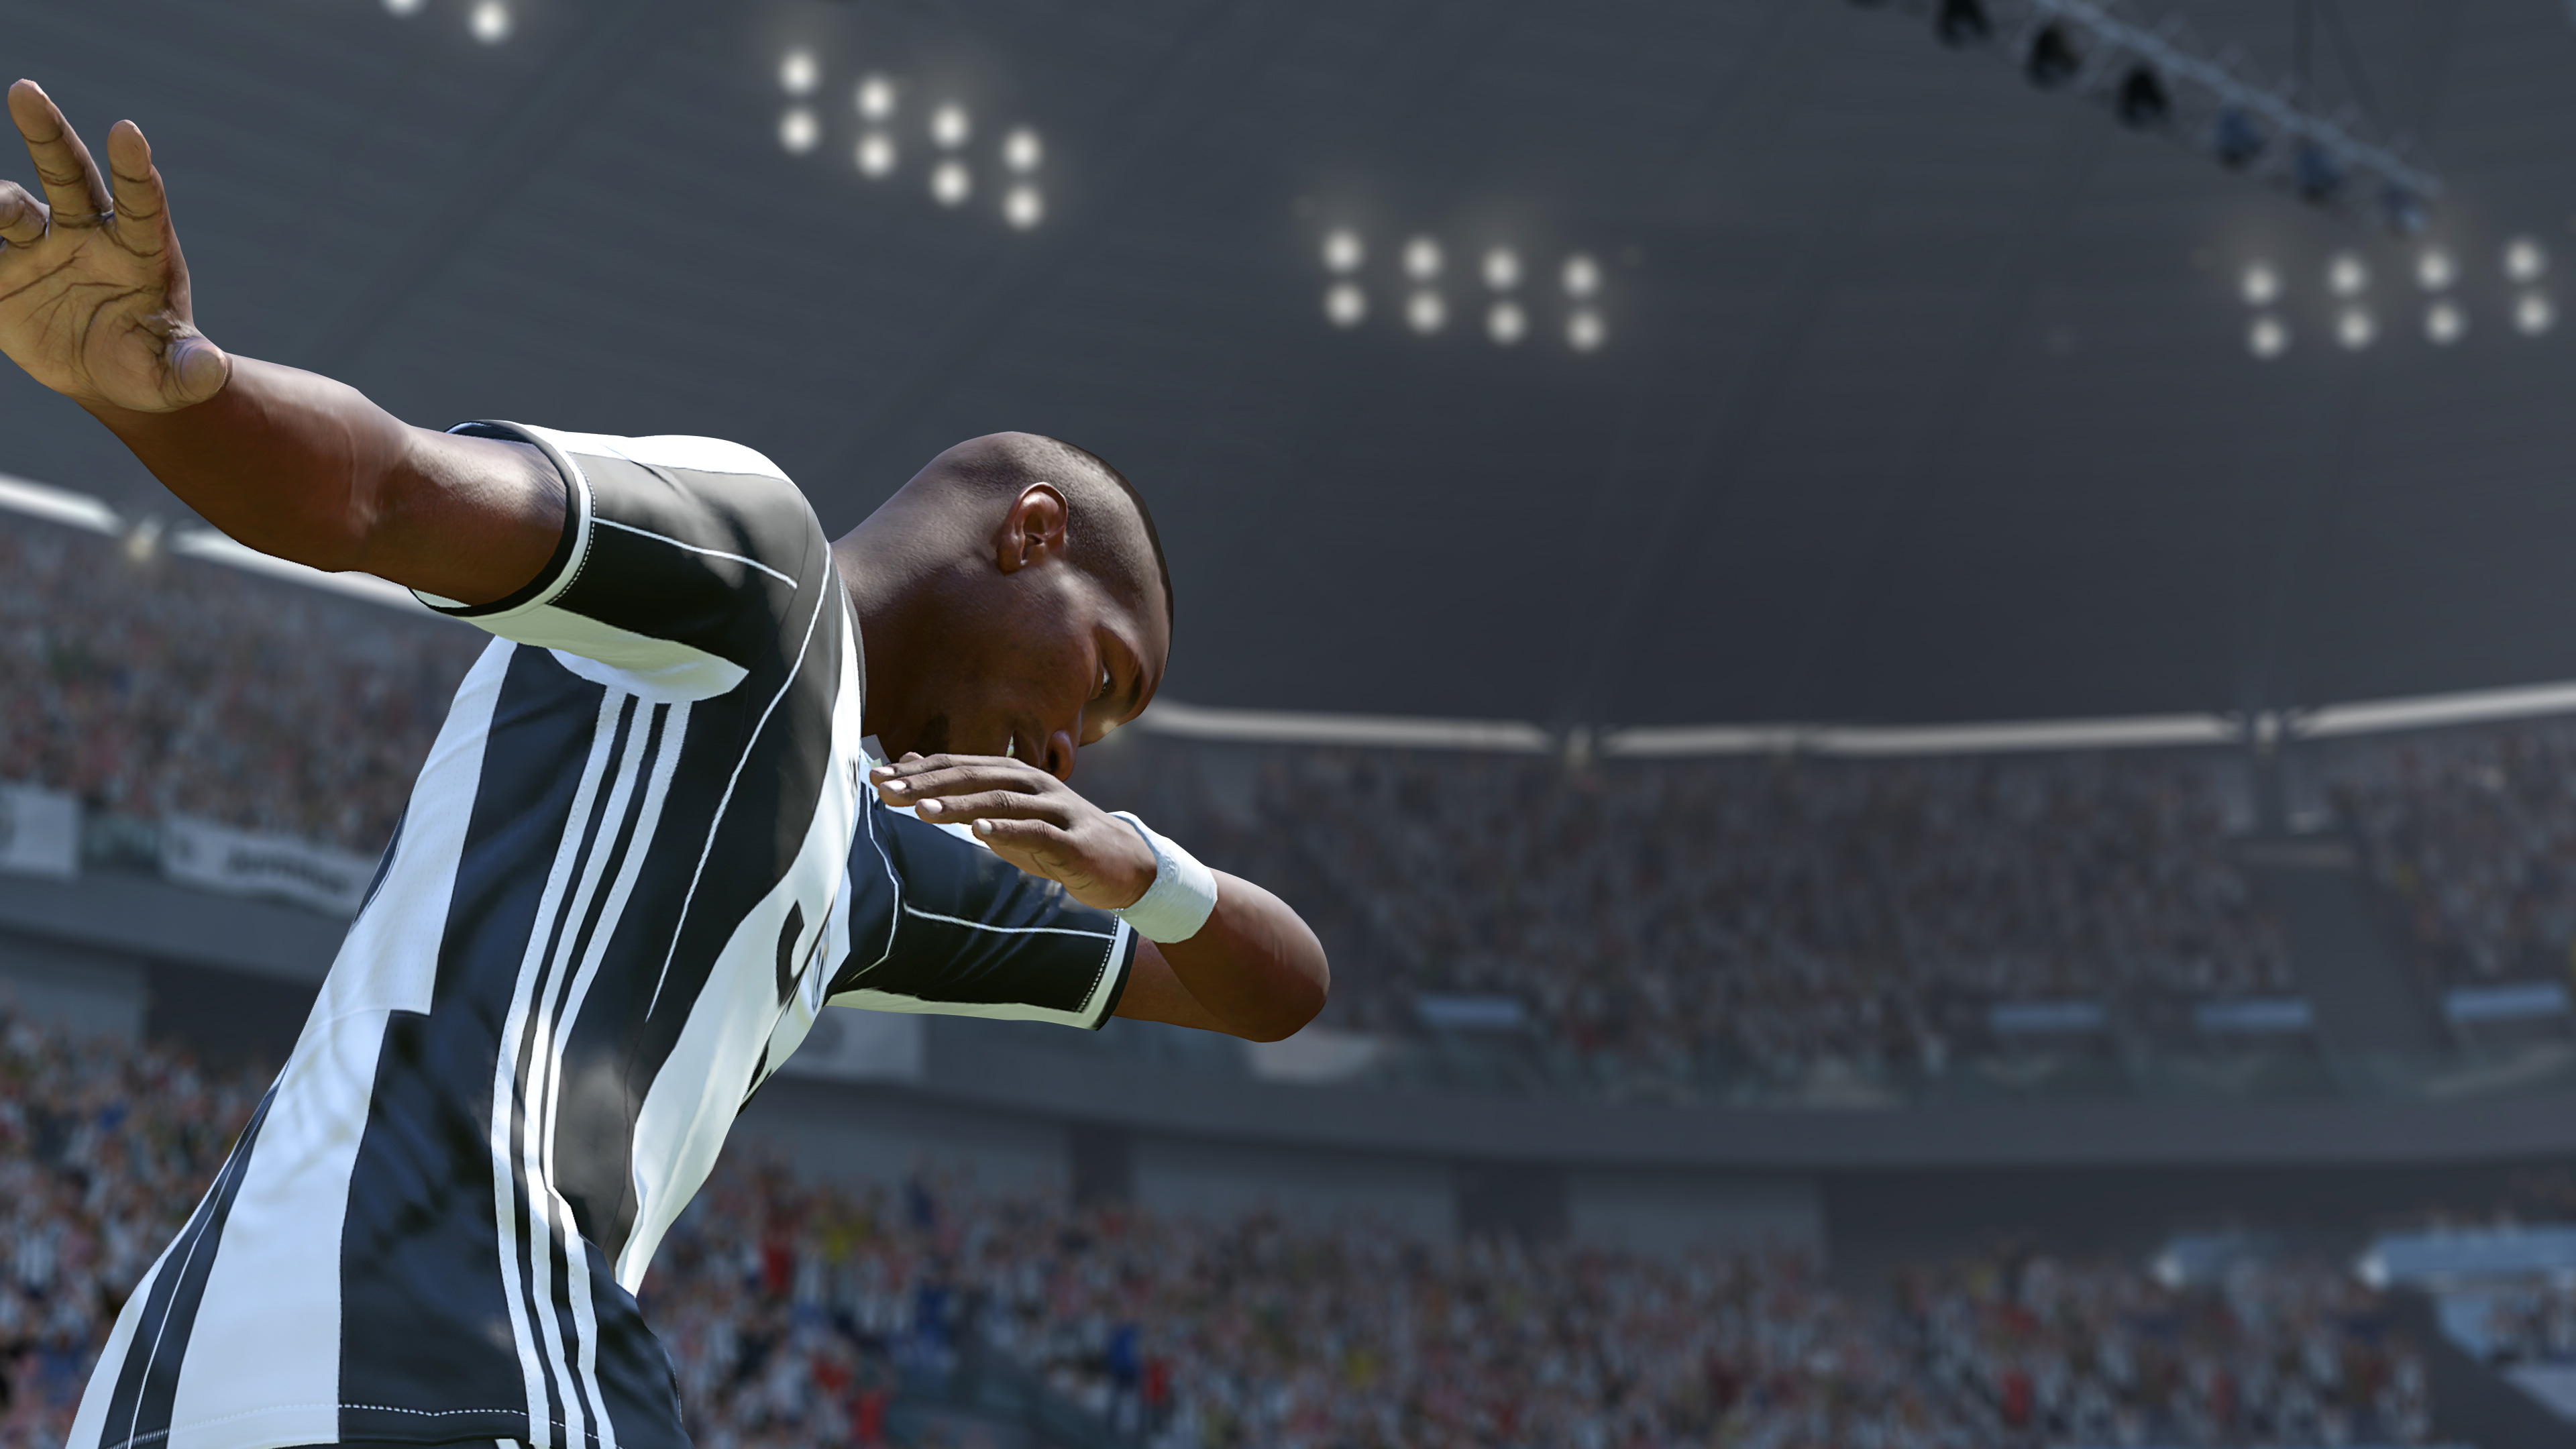 ea sports partners juventus for fifa 17